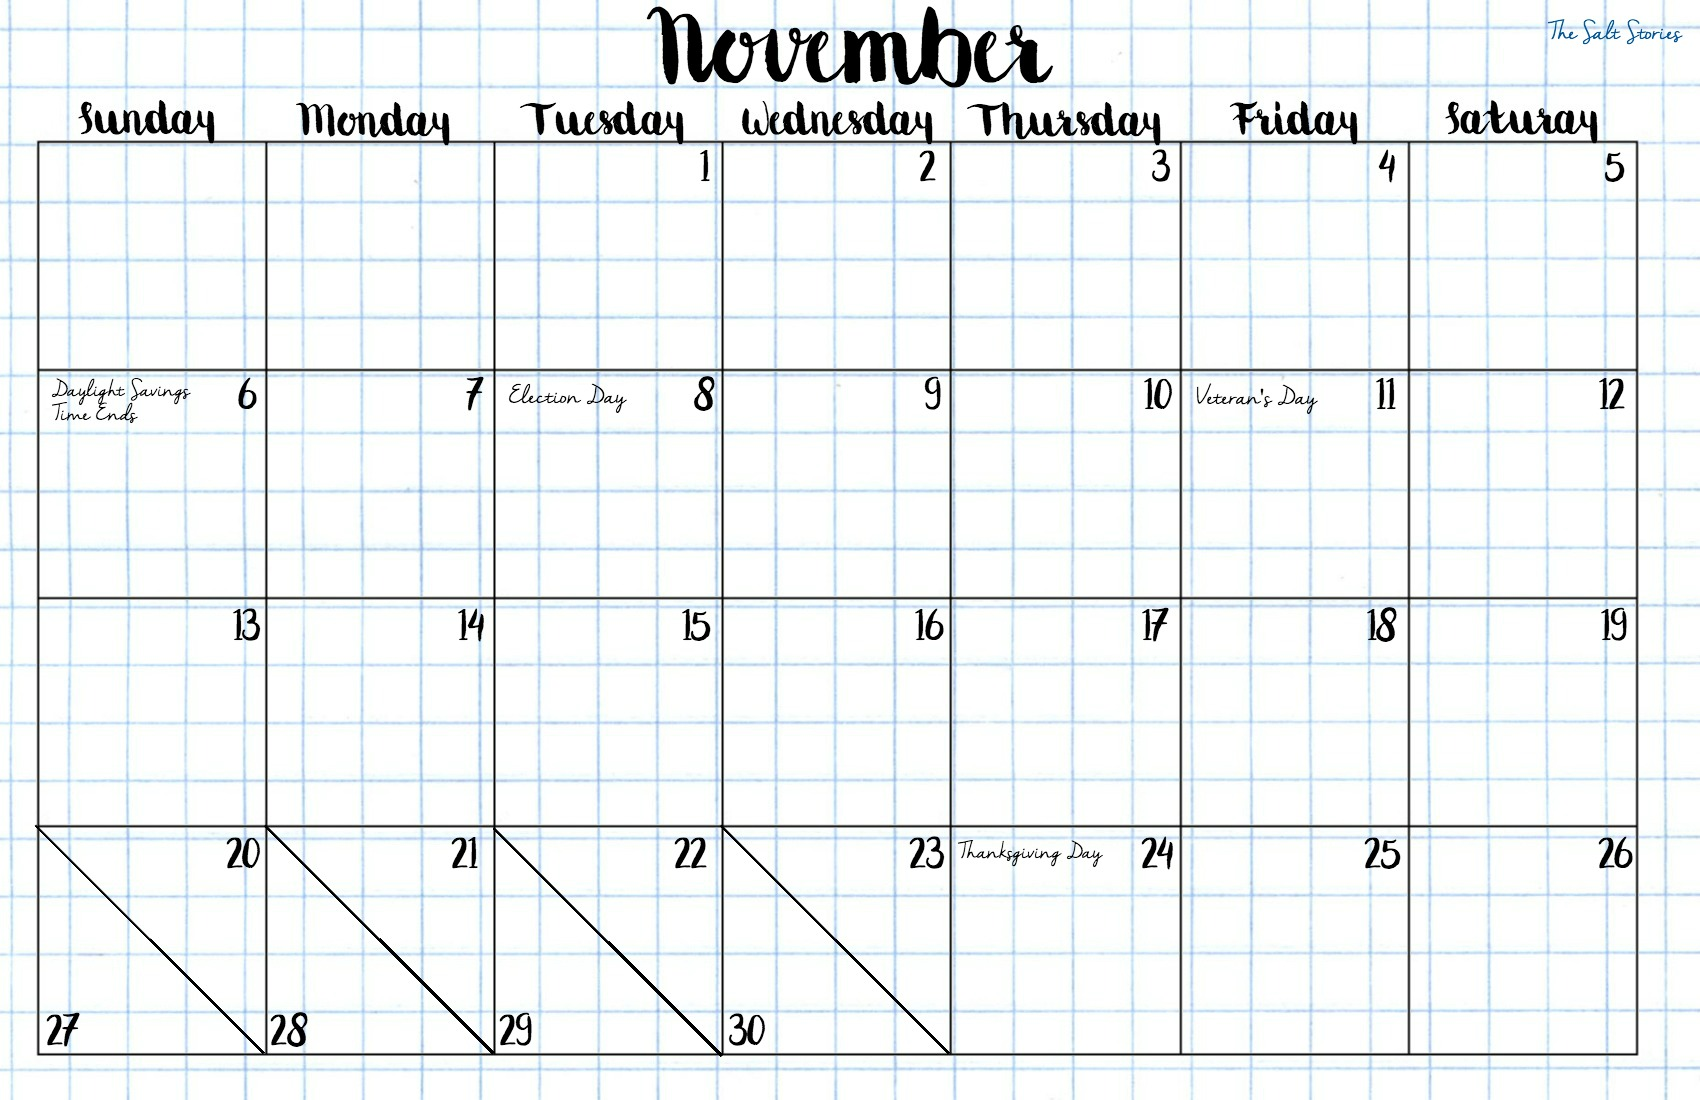 november-calendar-no-saints